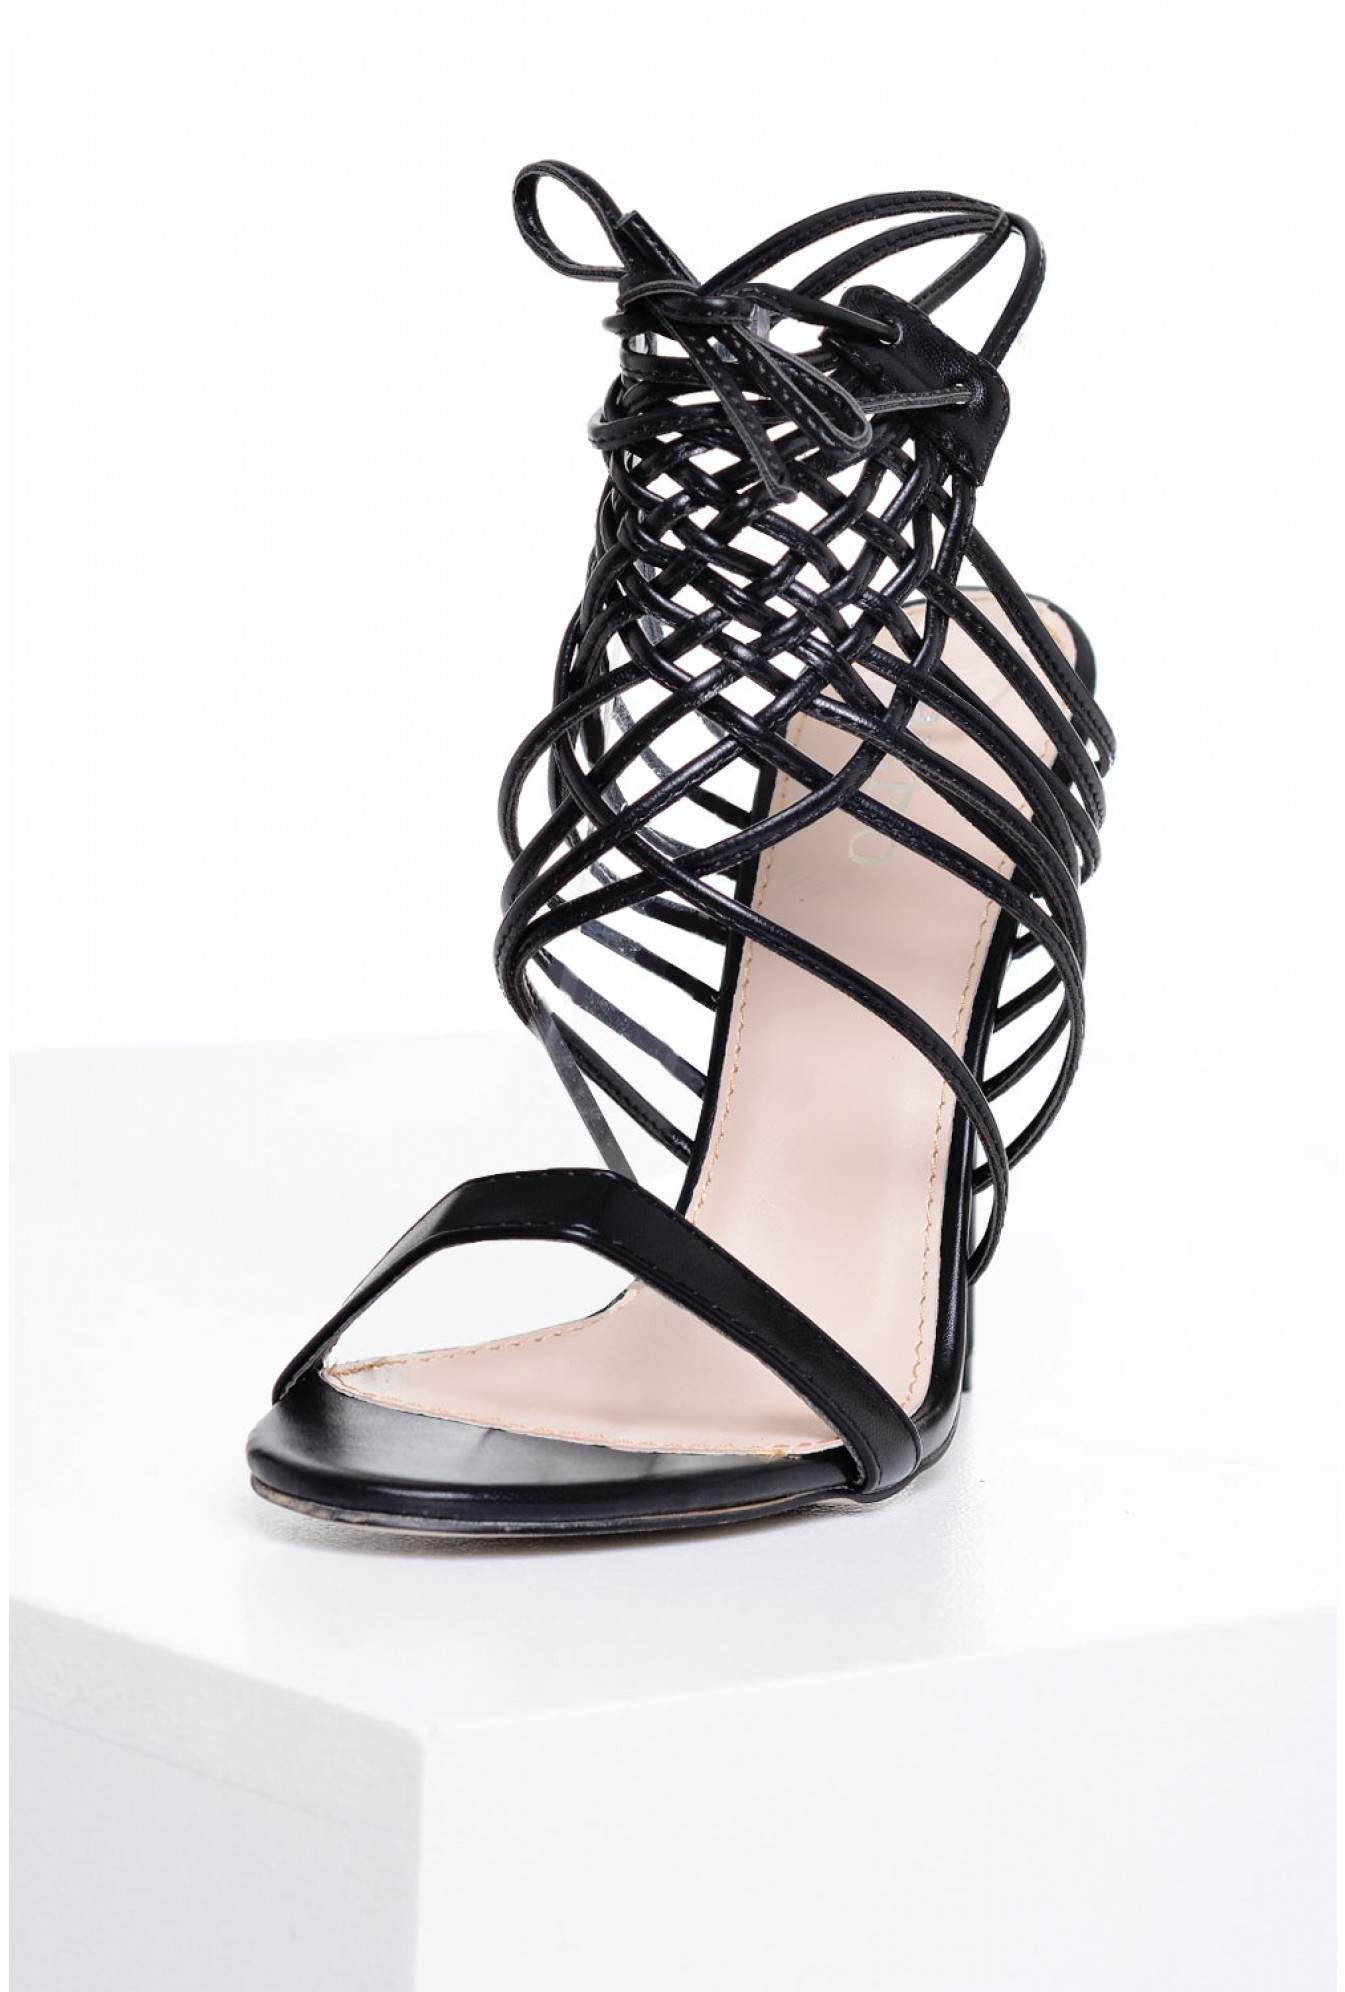 b5a6ac989cc Indigo Footwear Piper Woven Lace Up Hell Sandals in Black